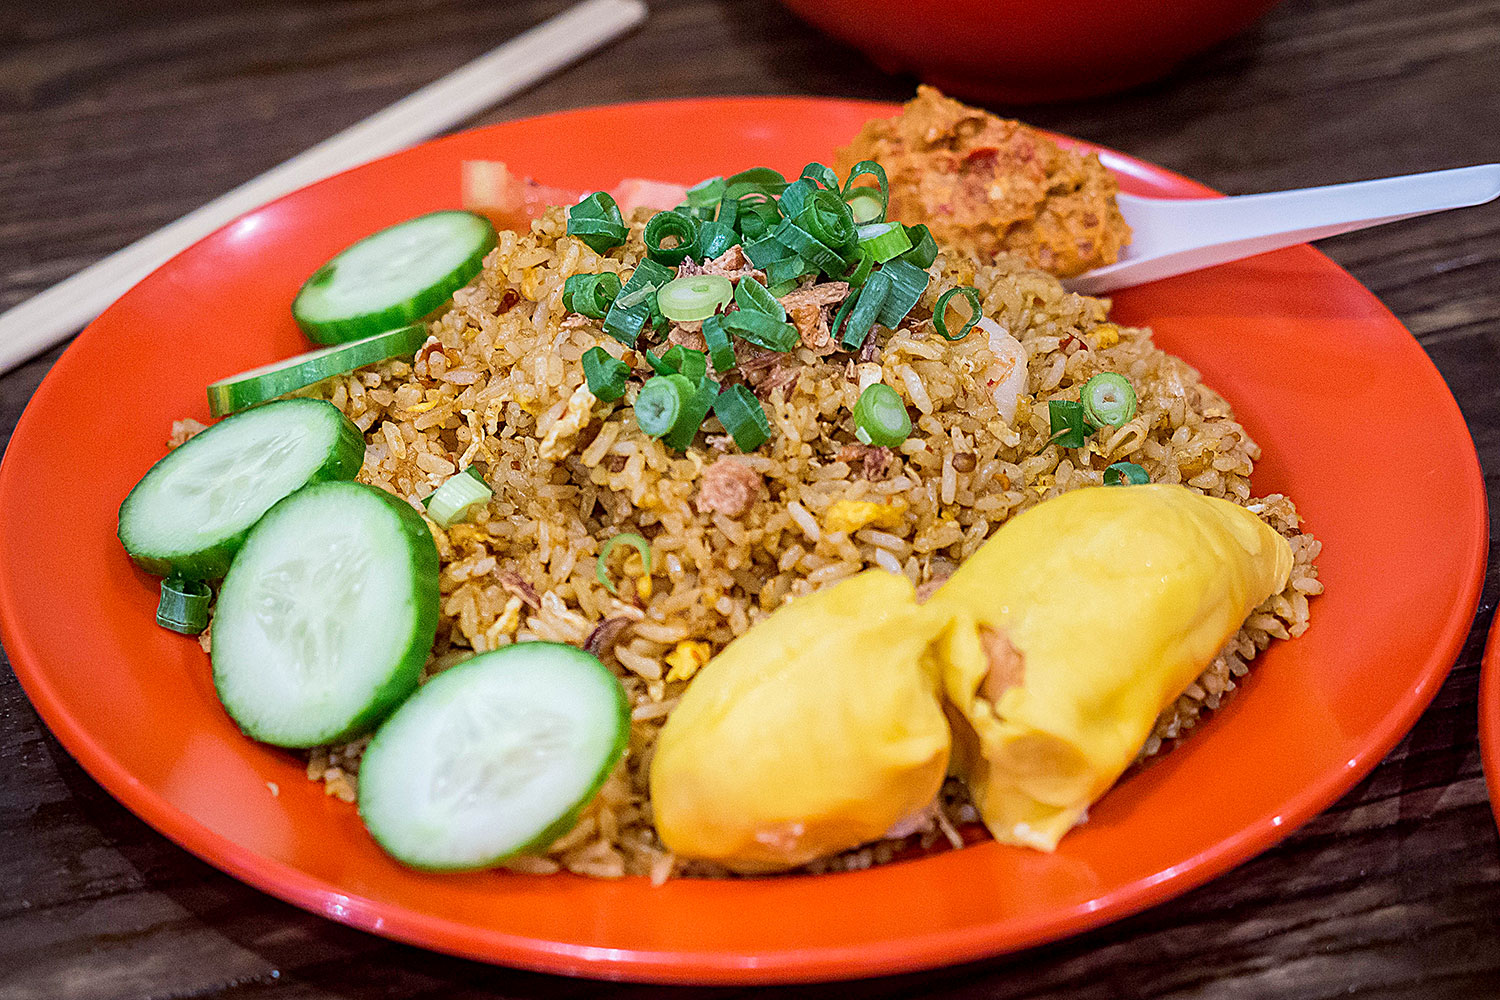 Nasi Goreng with Musang King Durian (Special): Ho Jiak, Strathfield. Sydney Food Blog Review